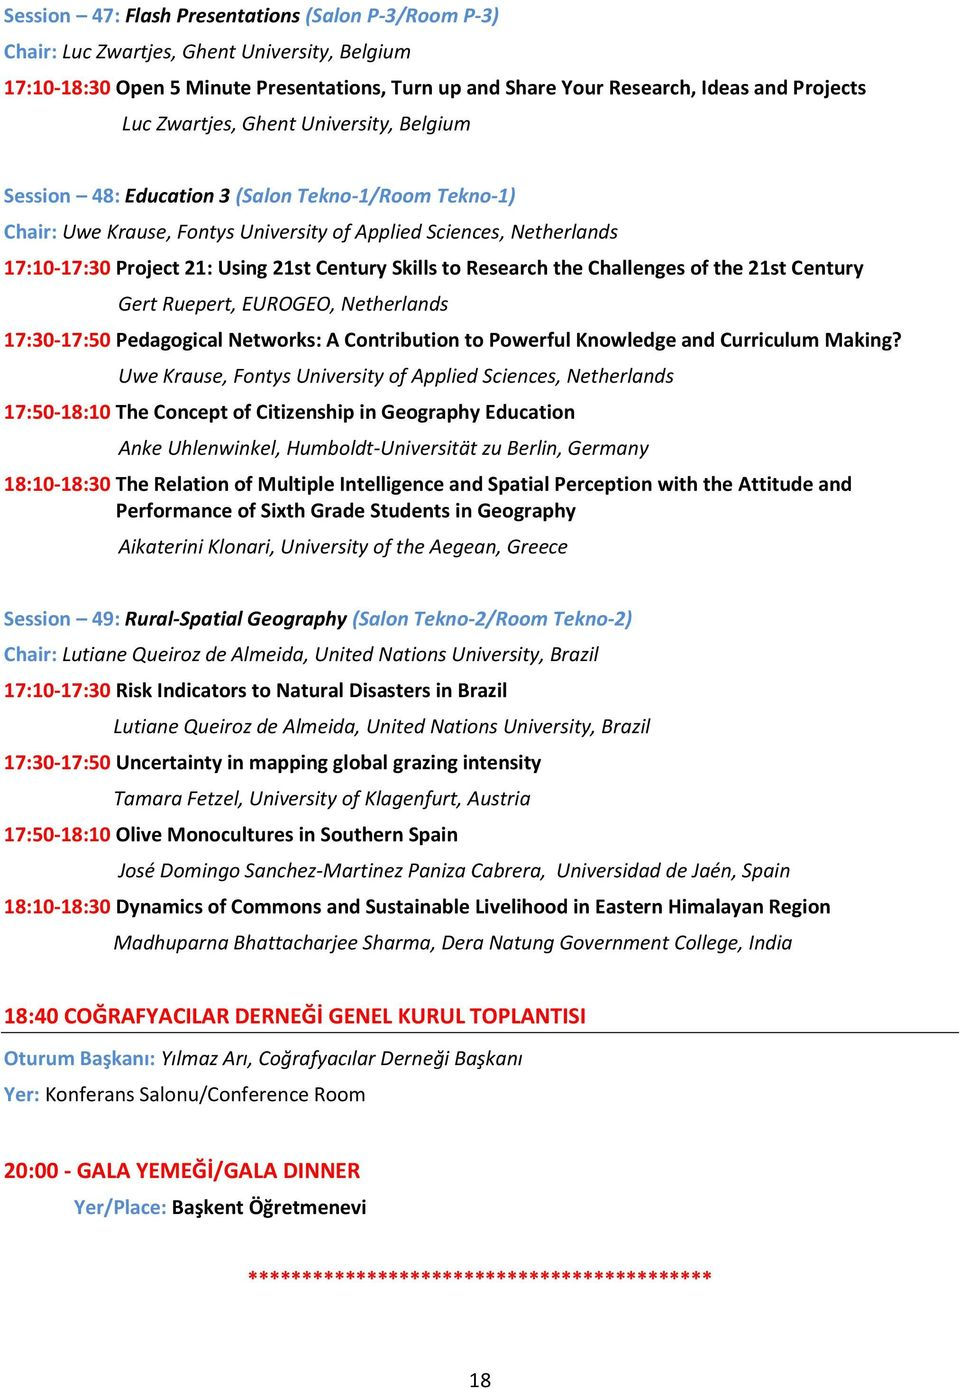 Century Skills to Research the Challenges of the 21st Century Gert Ruepert, EUROGEO, Netherlands 17:30-17:50 Pedagogical Networks: A Contribution to Powerful Knowledge and Curriculum Making?